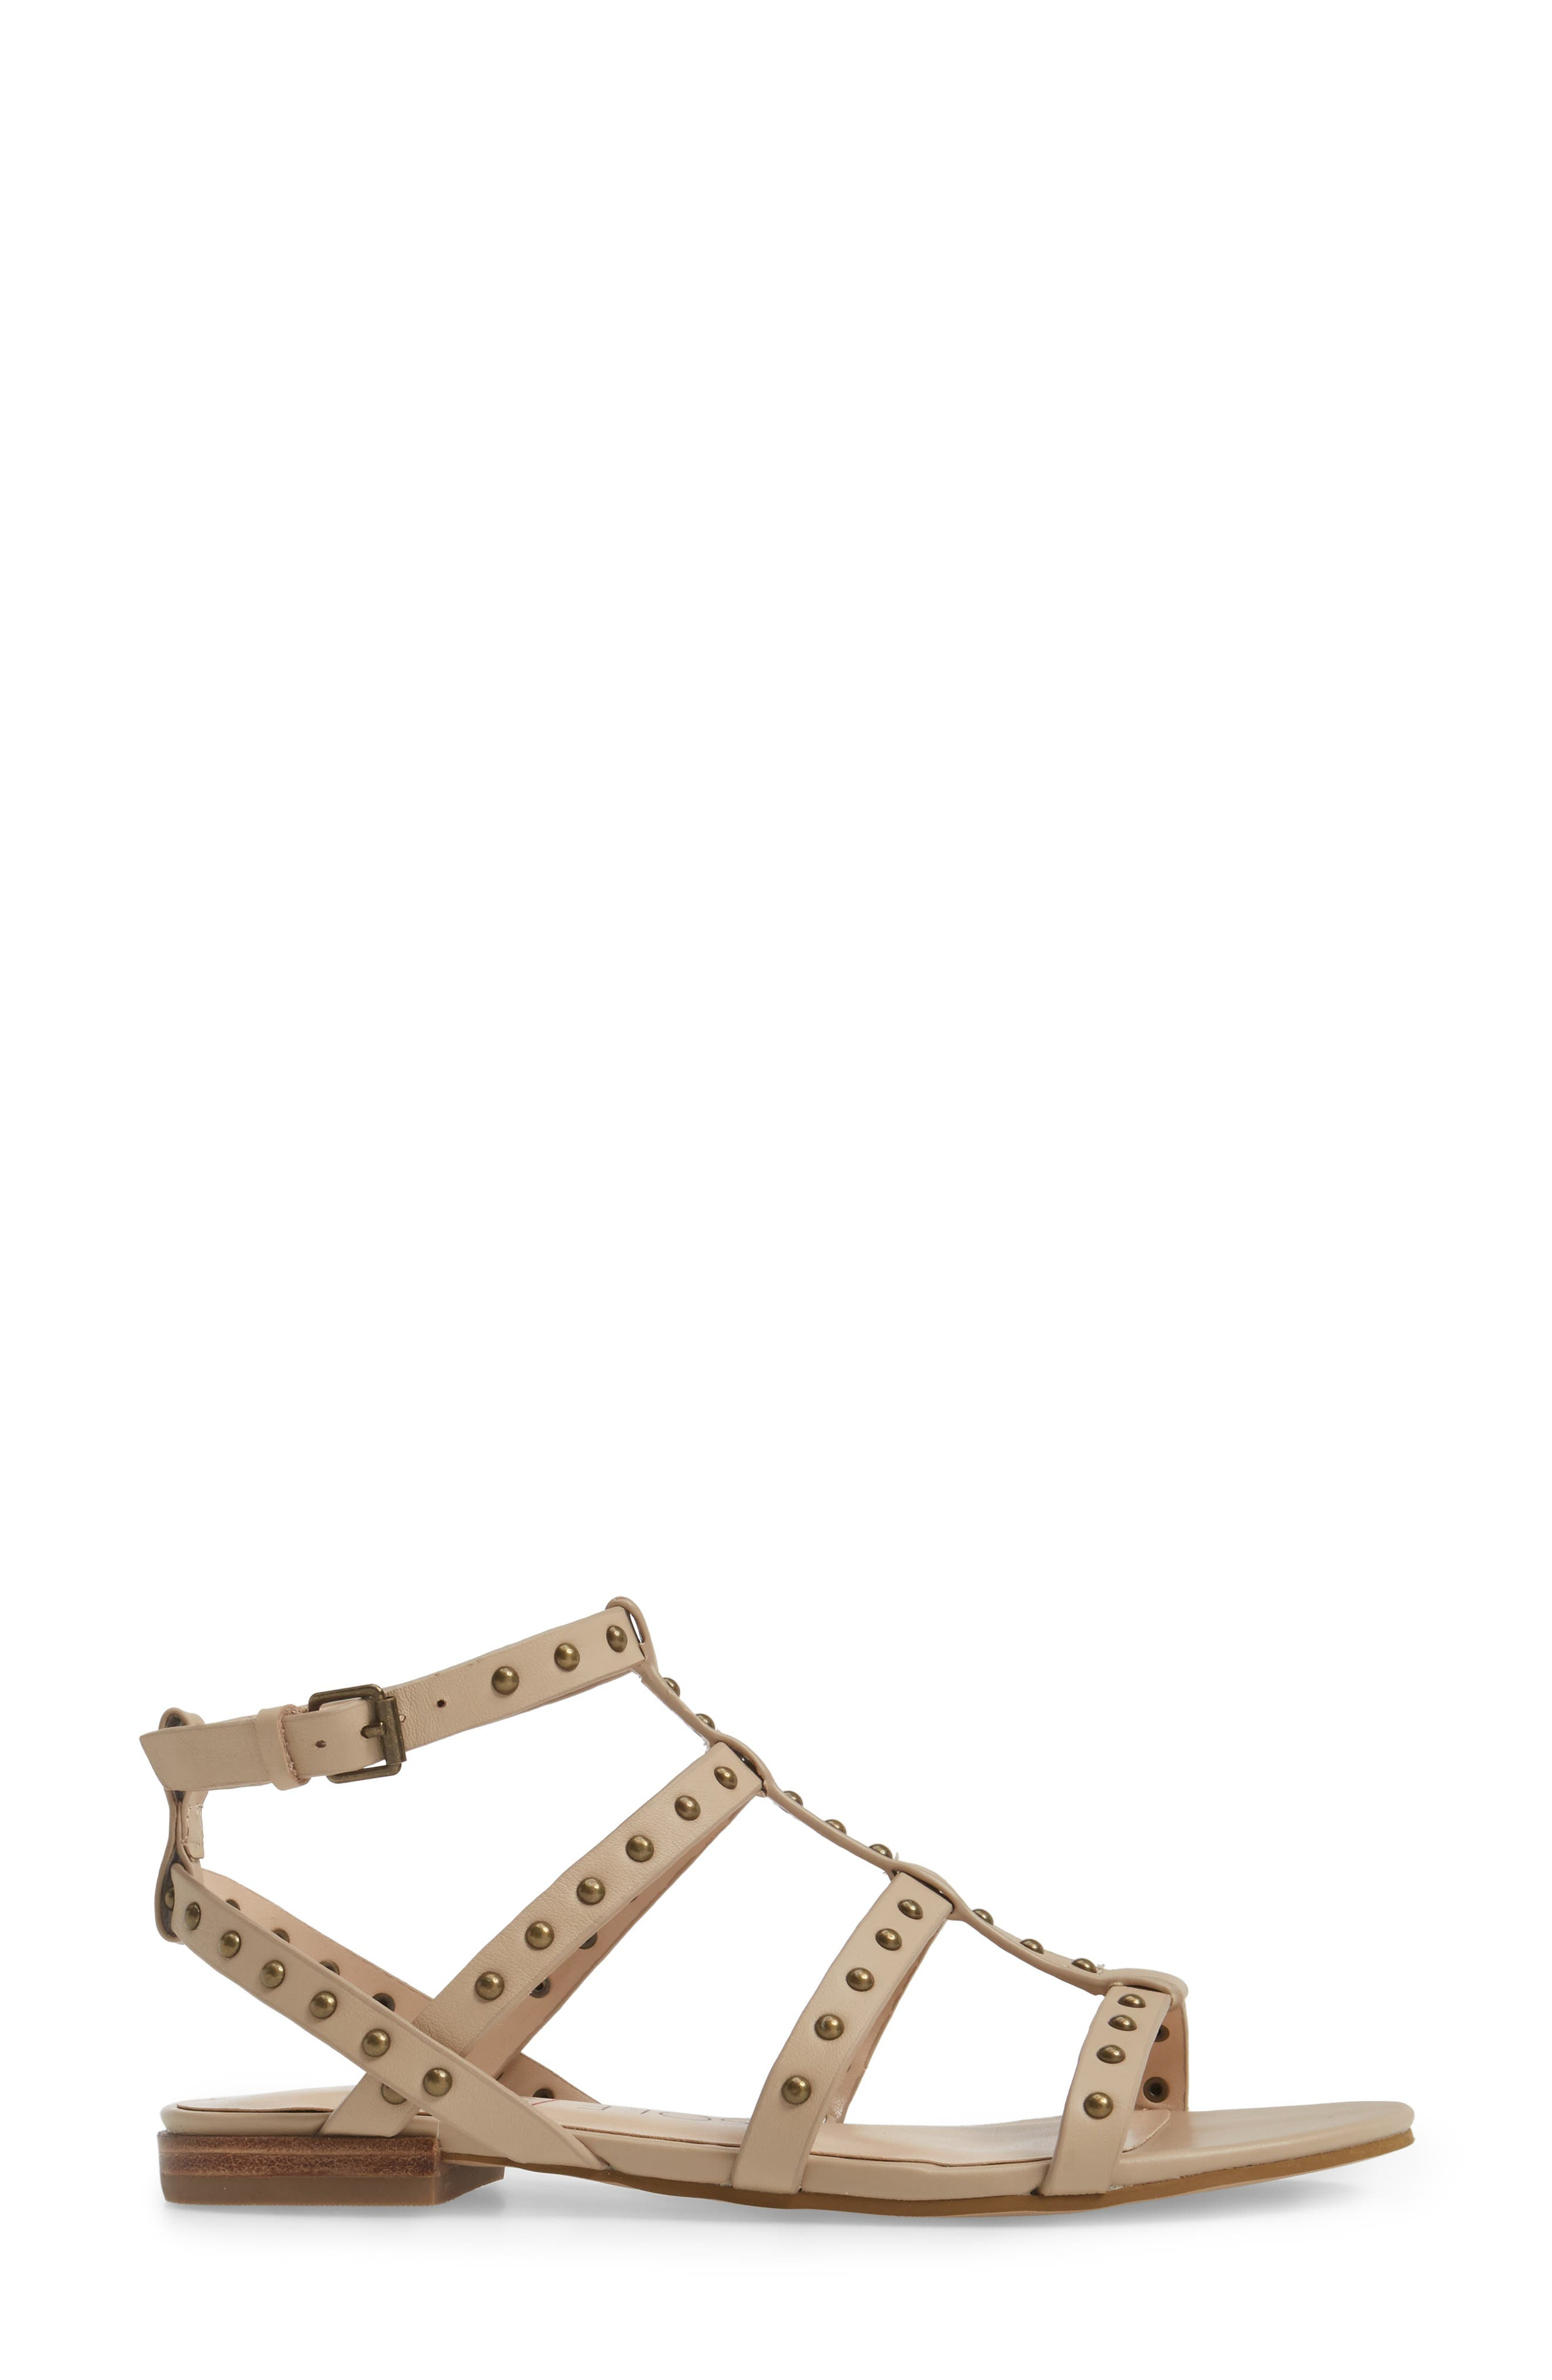 Celine Sandal,                             Alternate thumbnail 6, color,